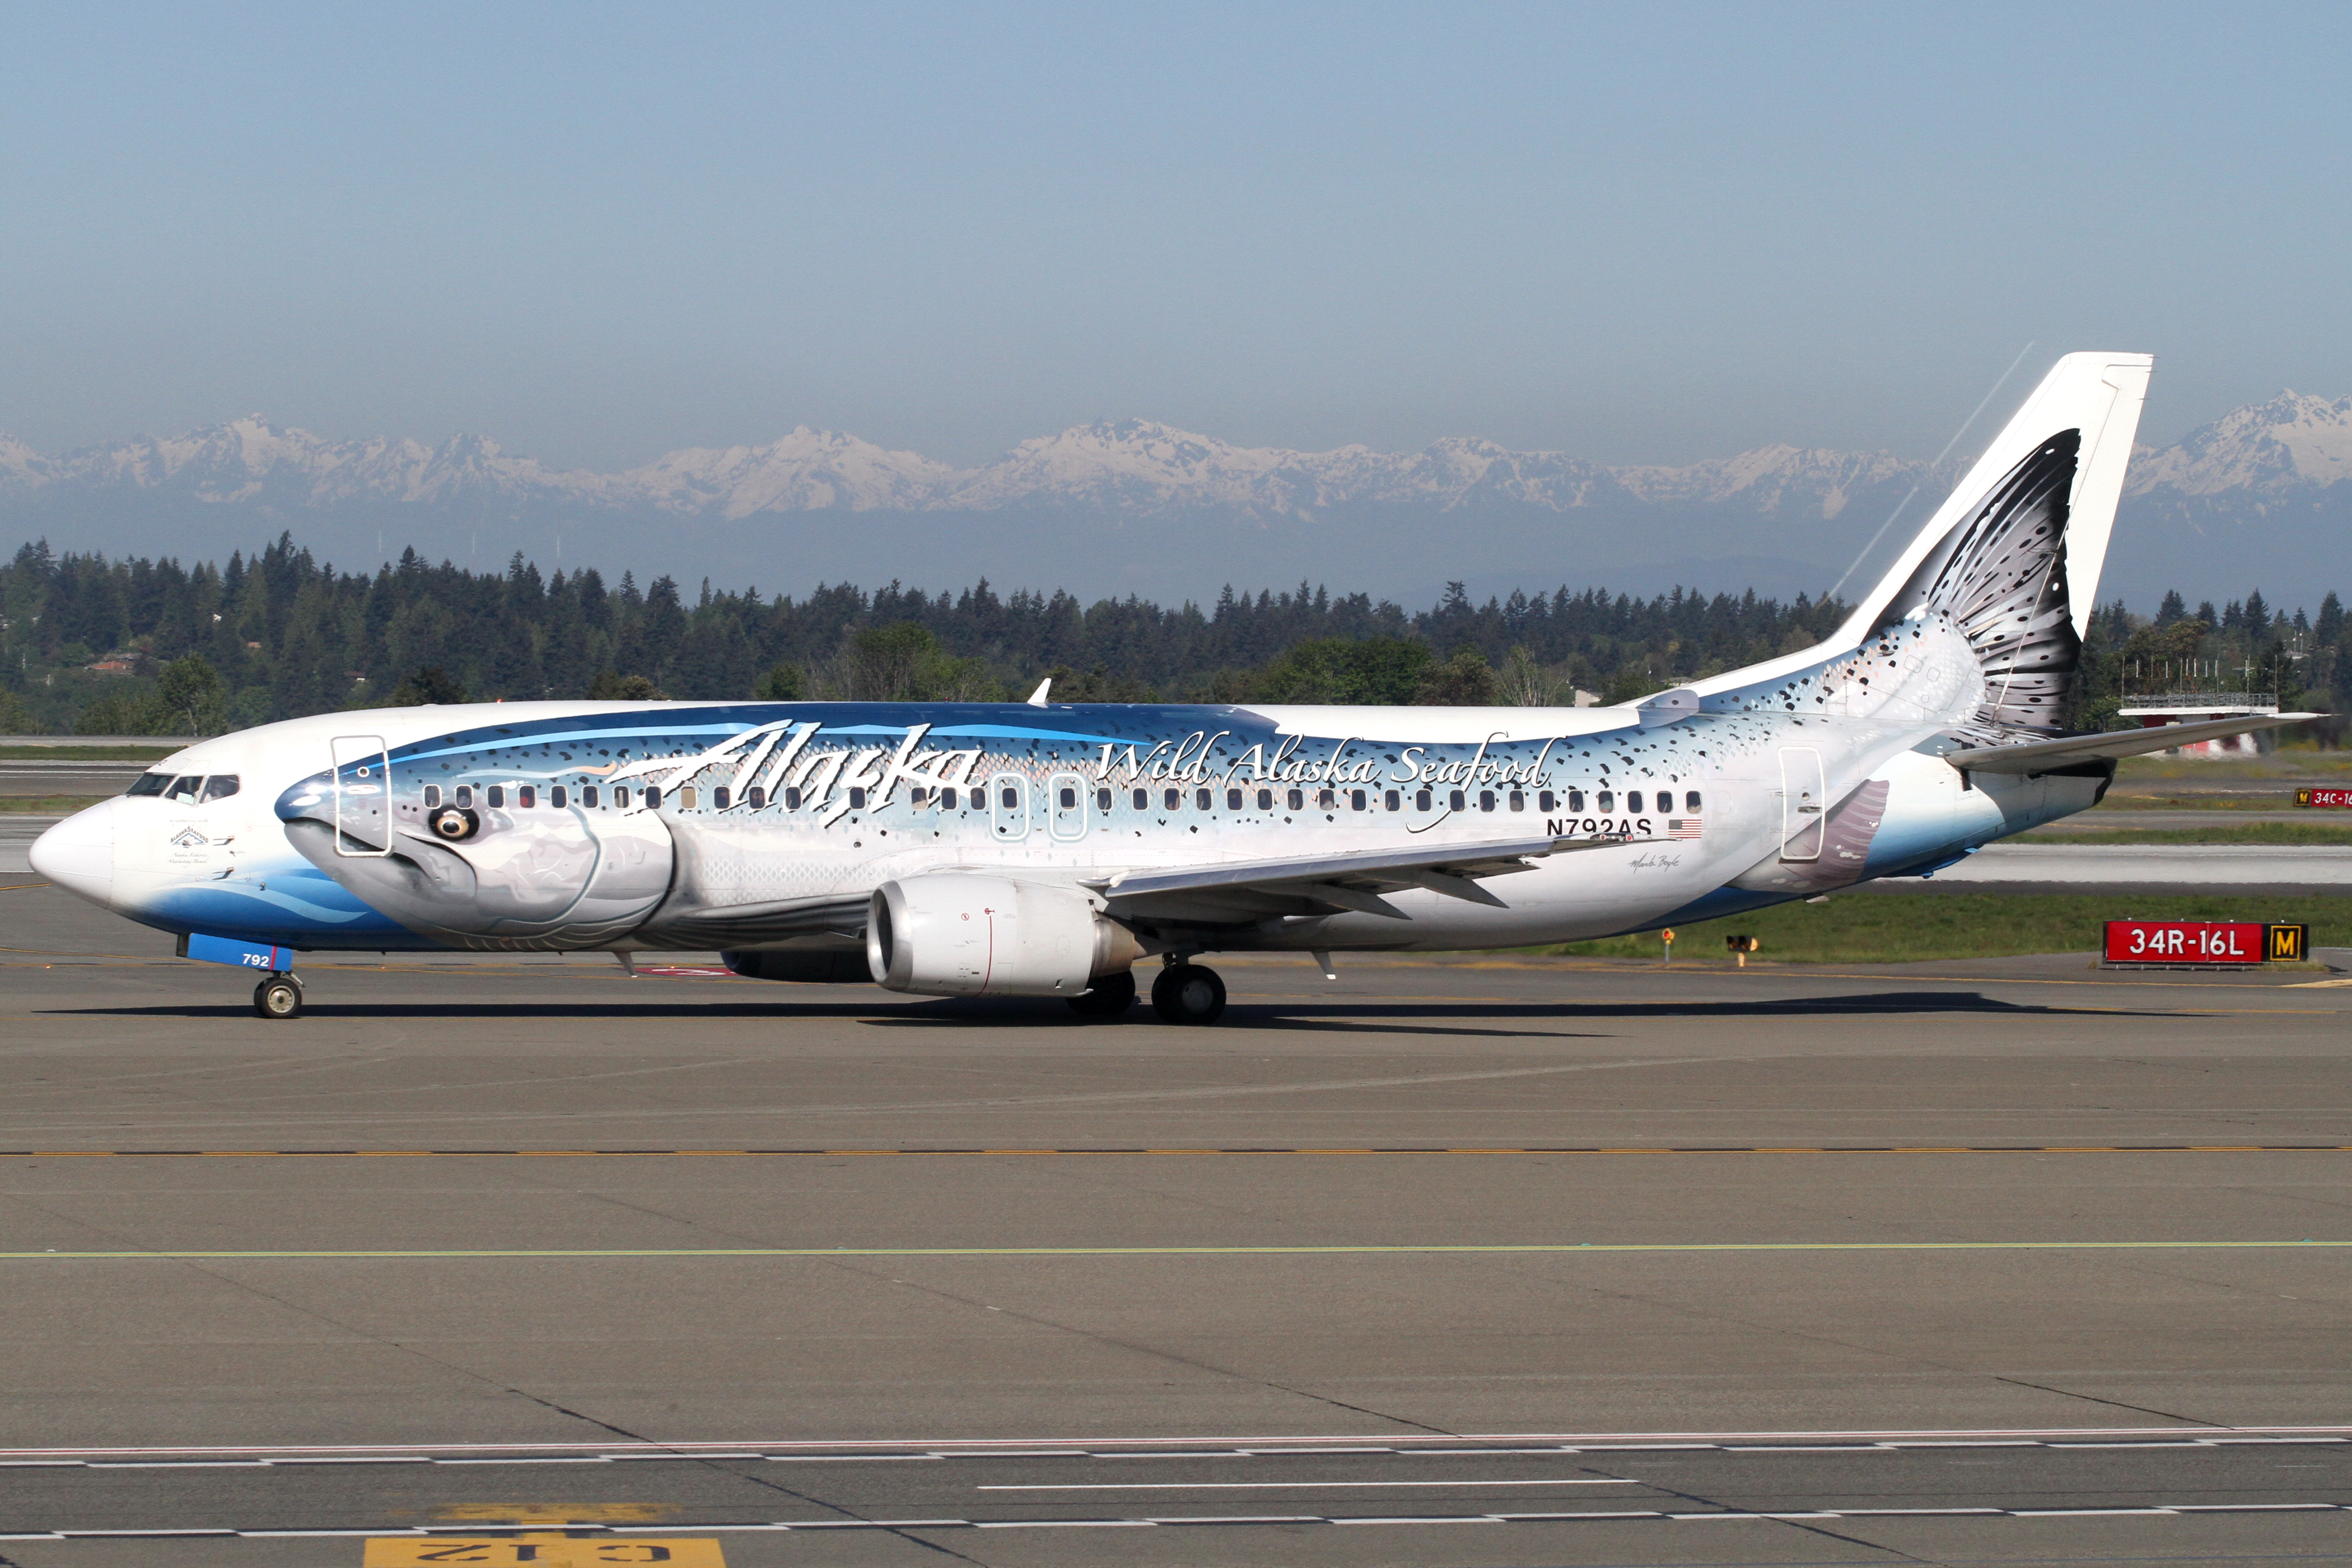 an introduction to the history of alaska airlines As i mentioned in the introduction to this trip report, i booked a one-way qantas business class ticket from sydney to san francisco using alaska airline's mileage plan.